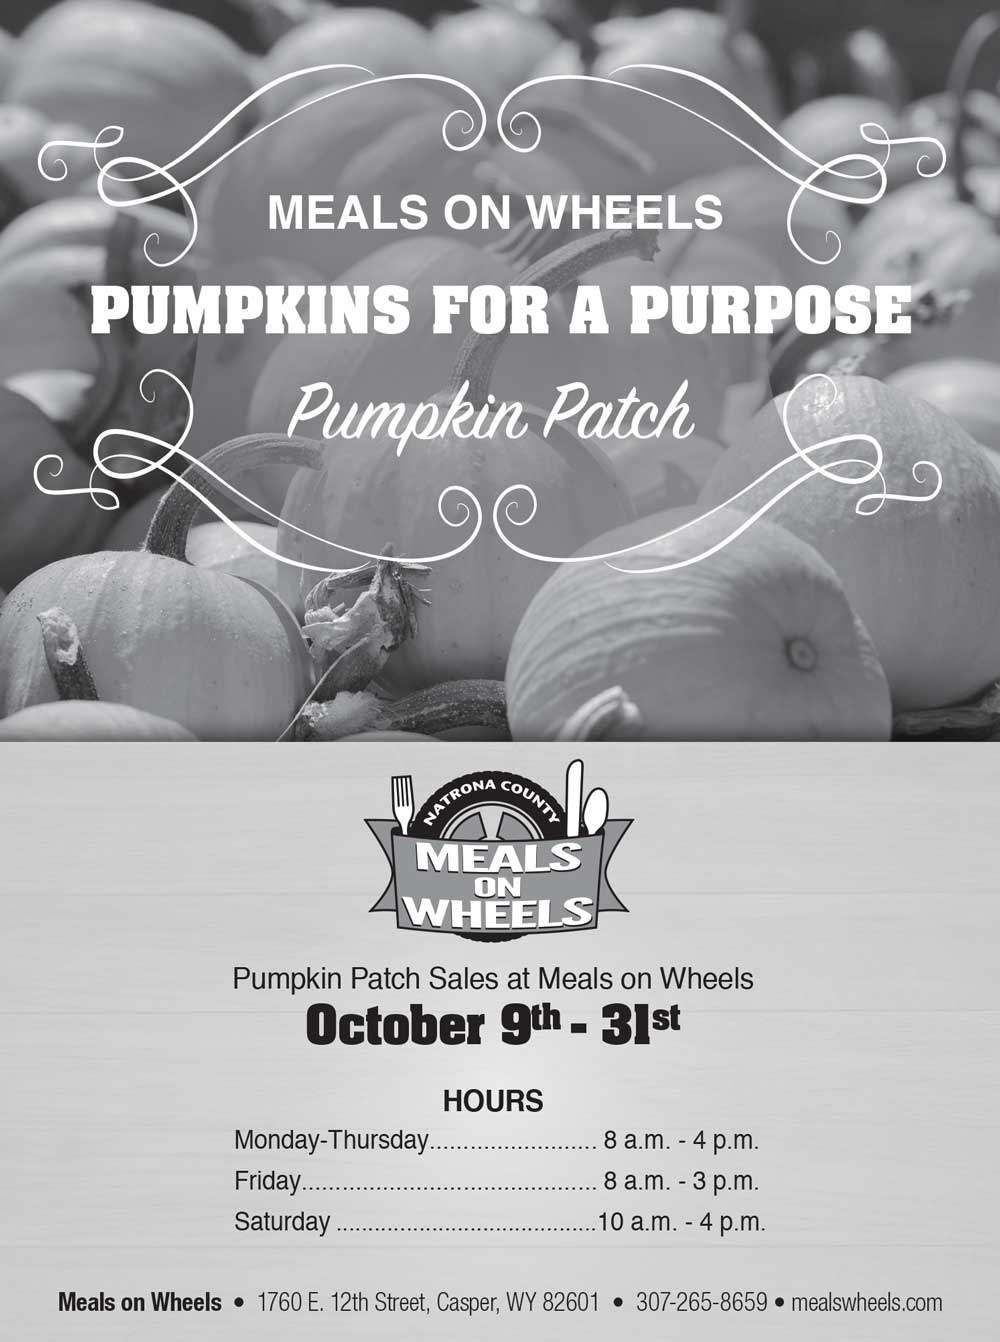 Pumpkin Patch Sales at Meals on Wheels